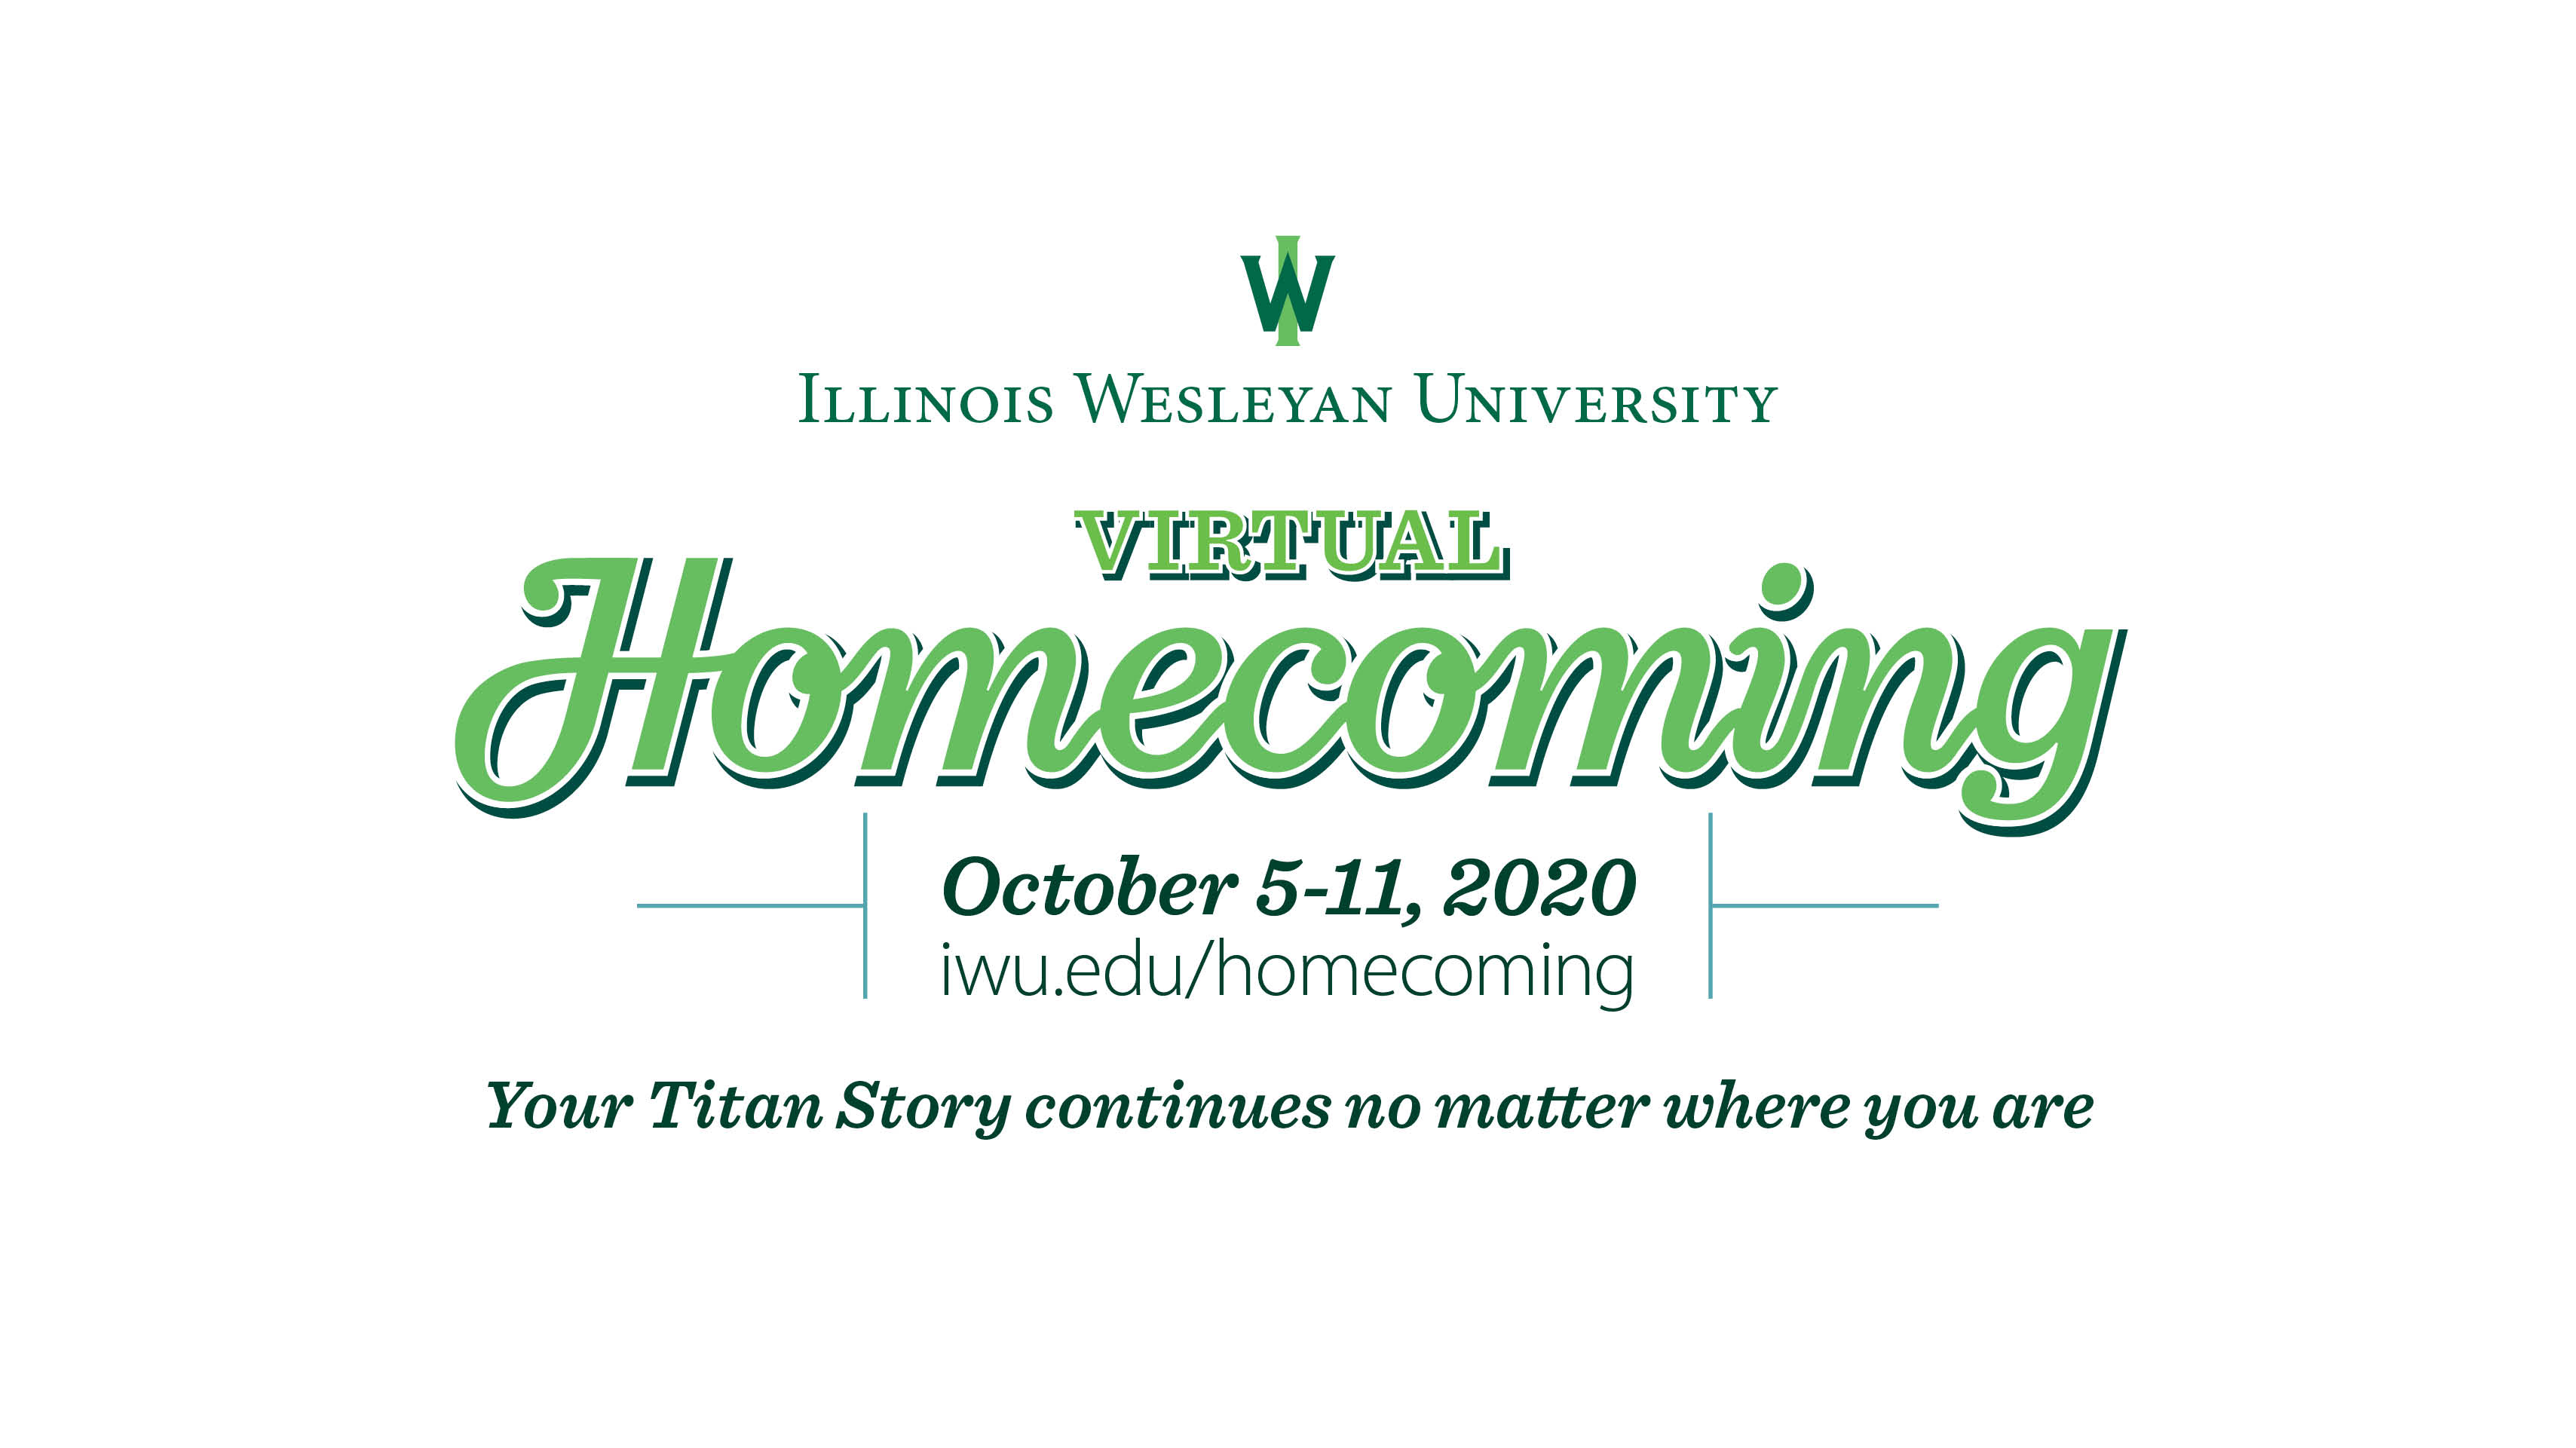 Homecoming facebook image